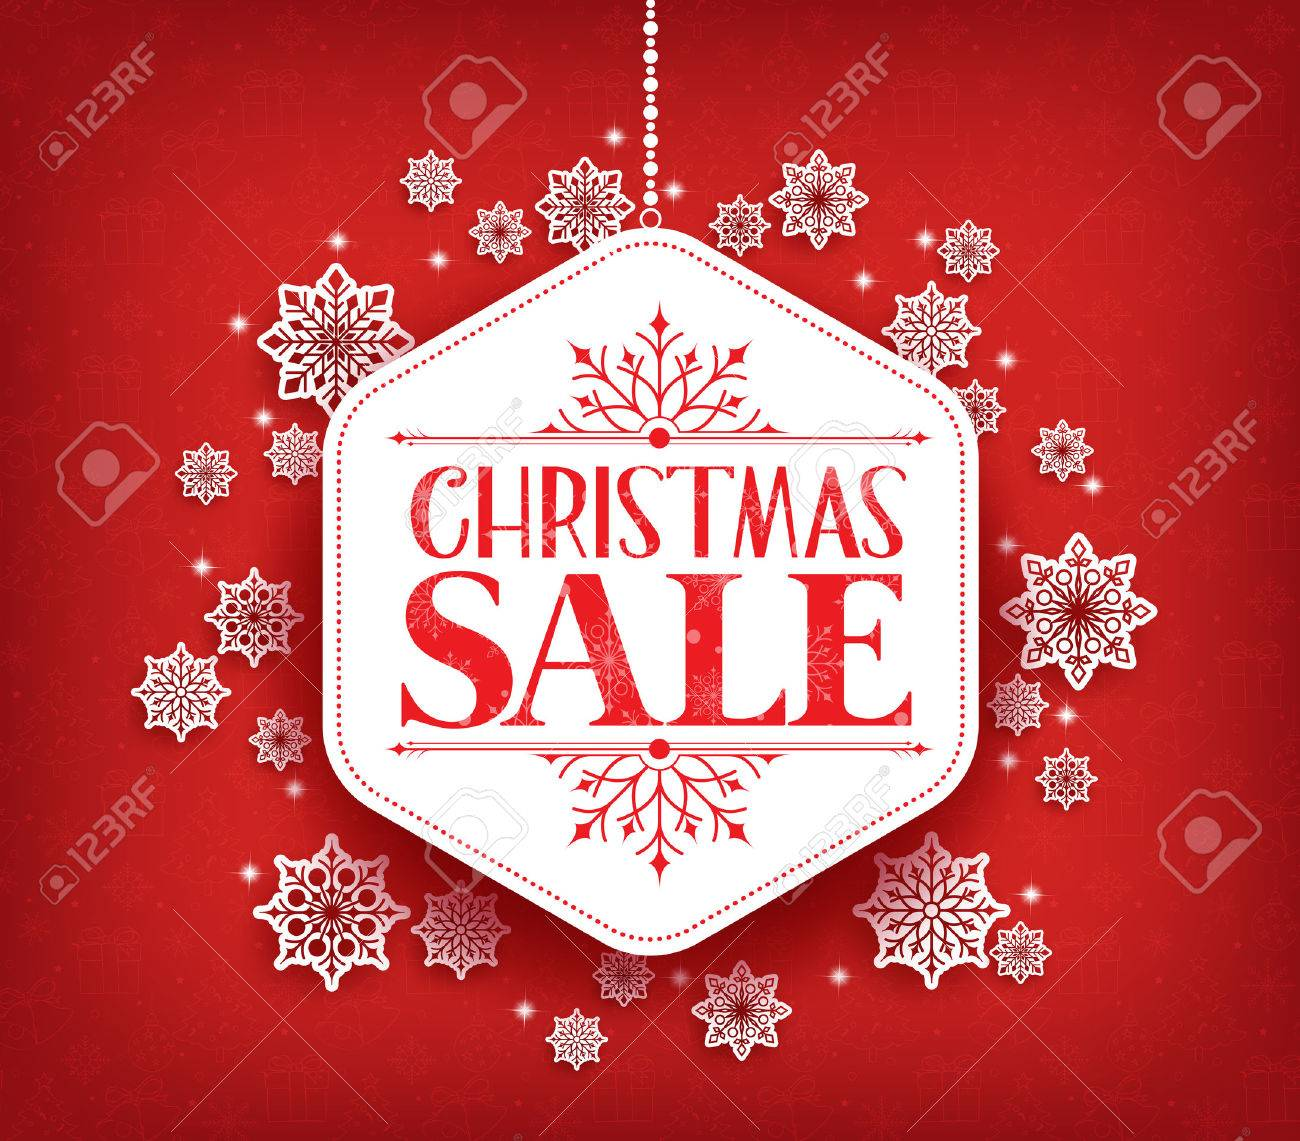 Merry Christmas Sale in Winter Snow Flakes Hanging with White Space for Text. Vector Illustration - 47417561